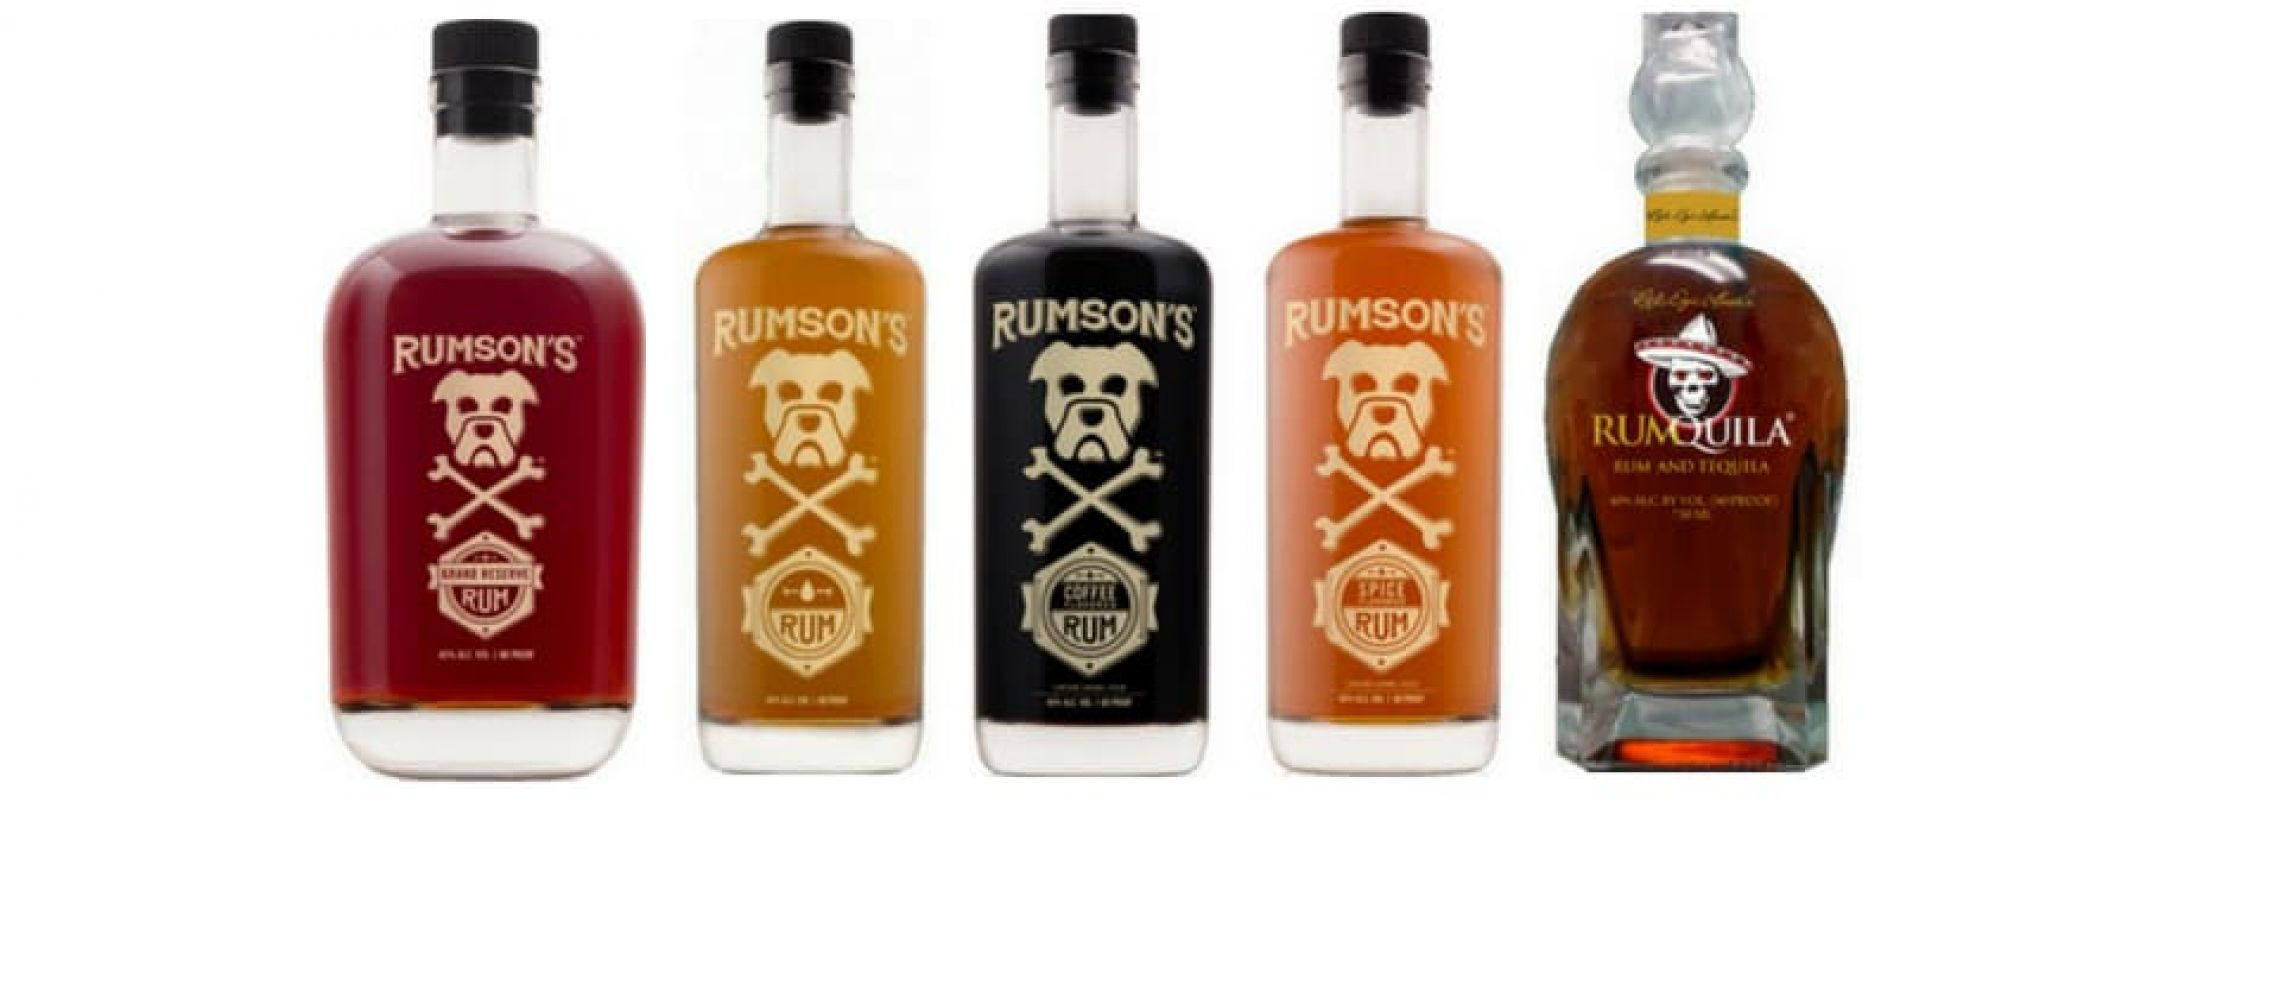 Photo for: 6 American Rum Brands You Must Try in 2018